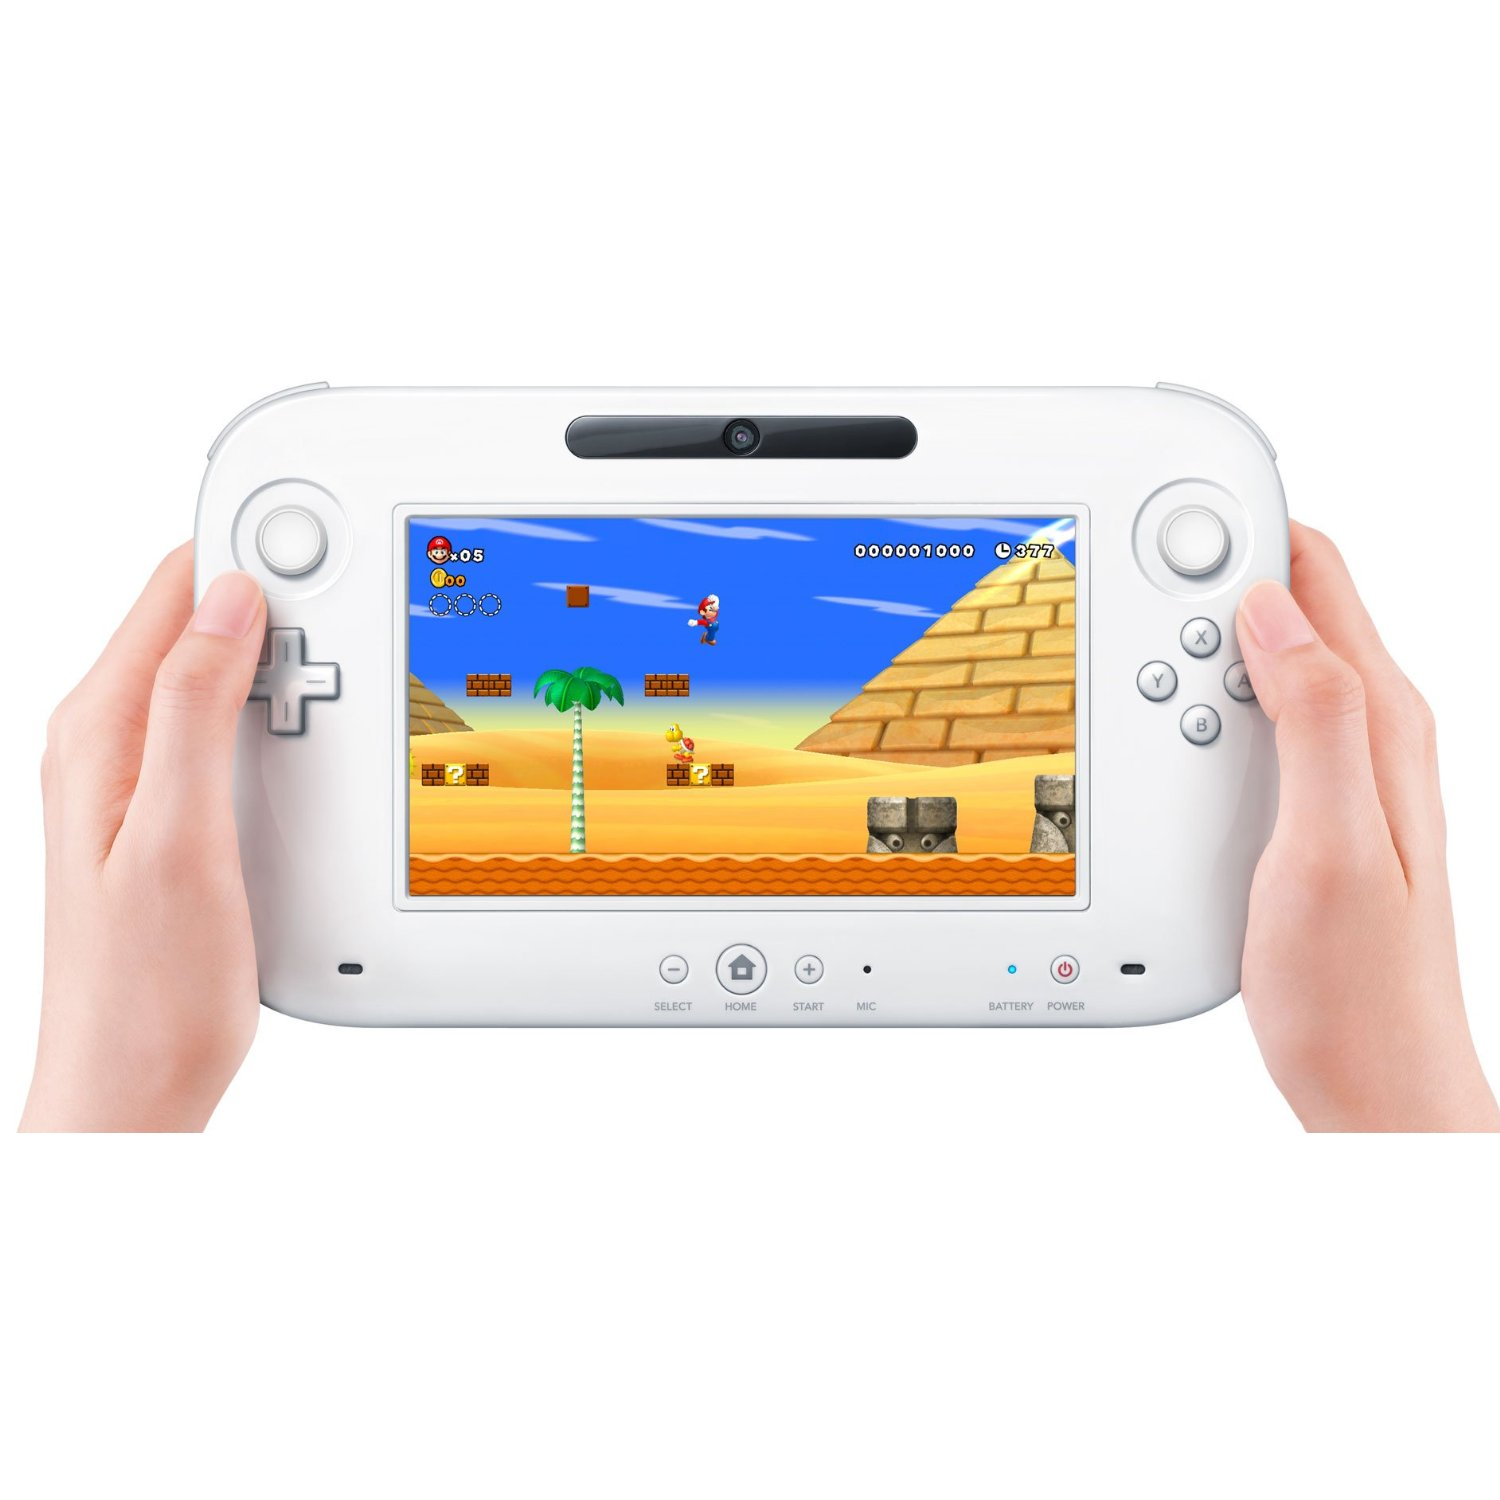 New Wii U Games : Wholesale nintendo wii u consoles